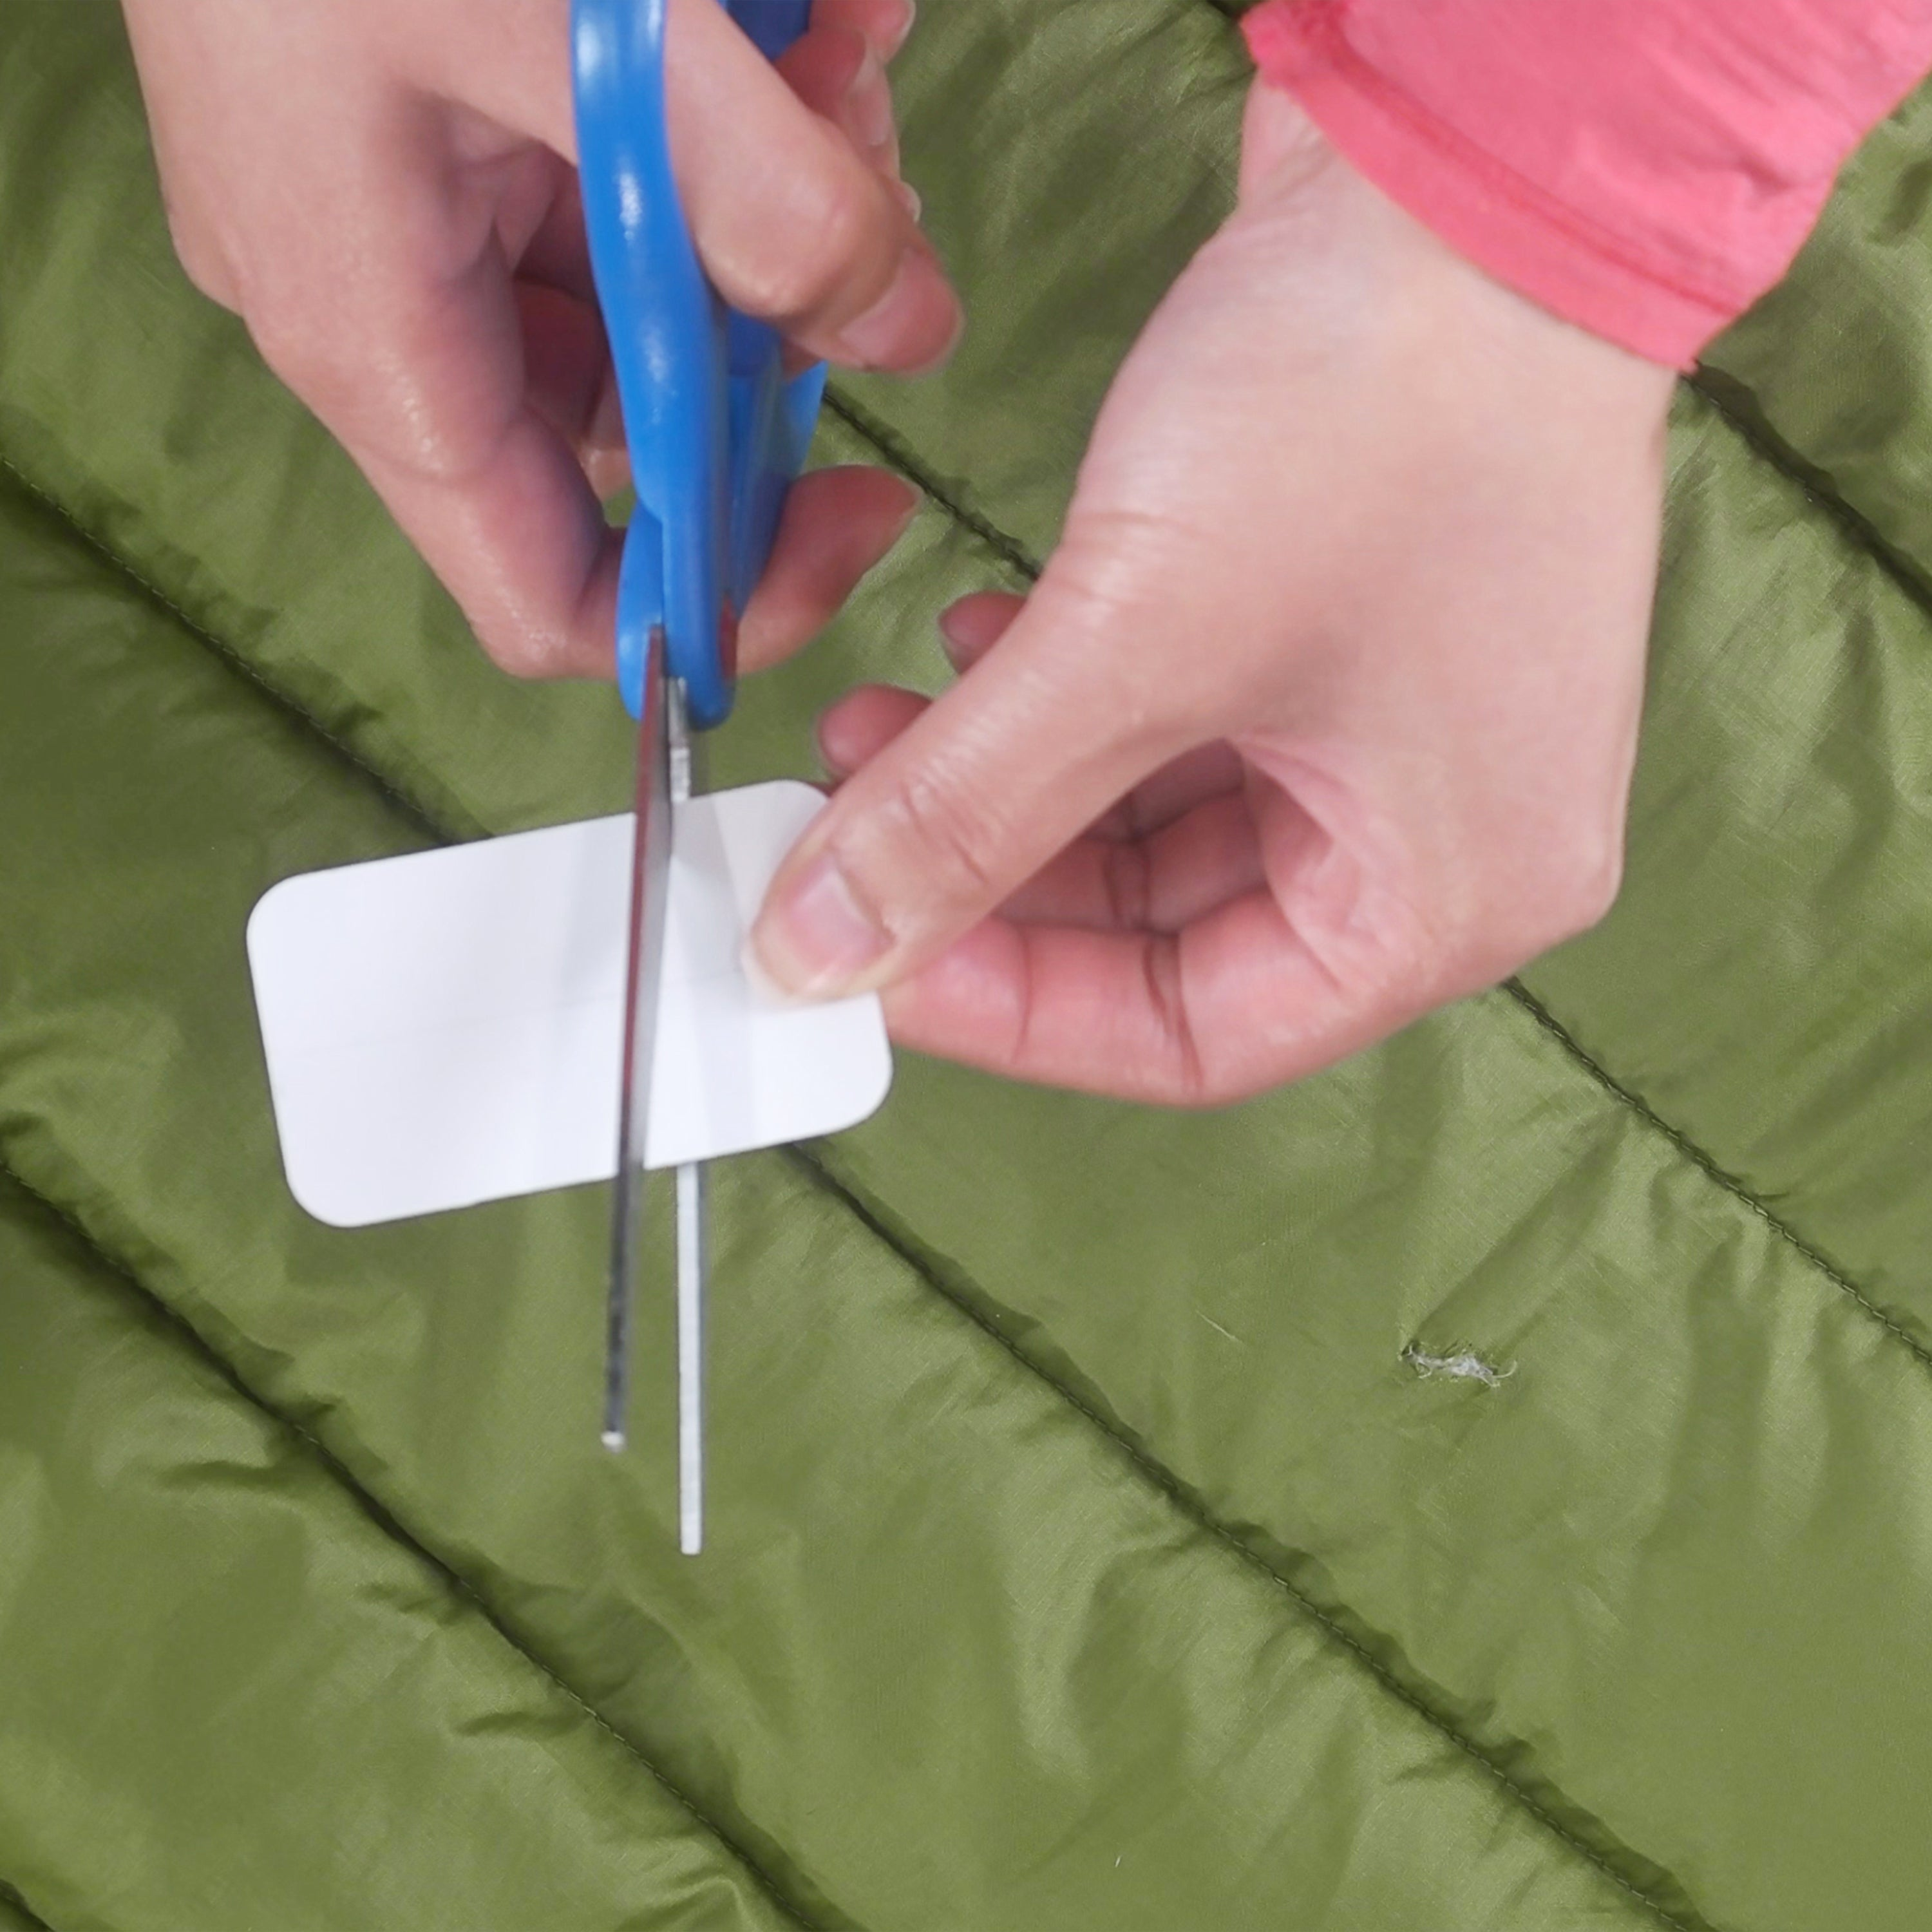 Outdoor Adhesive Repair Patch Kit Tape Camping Tent Jacket Air Mattress Blue